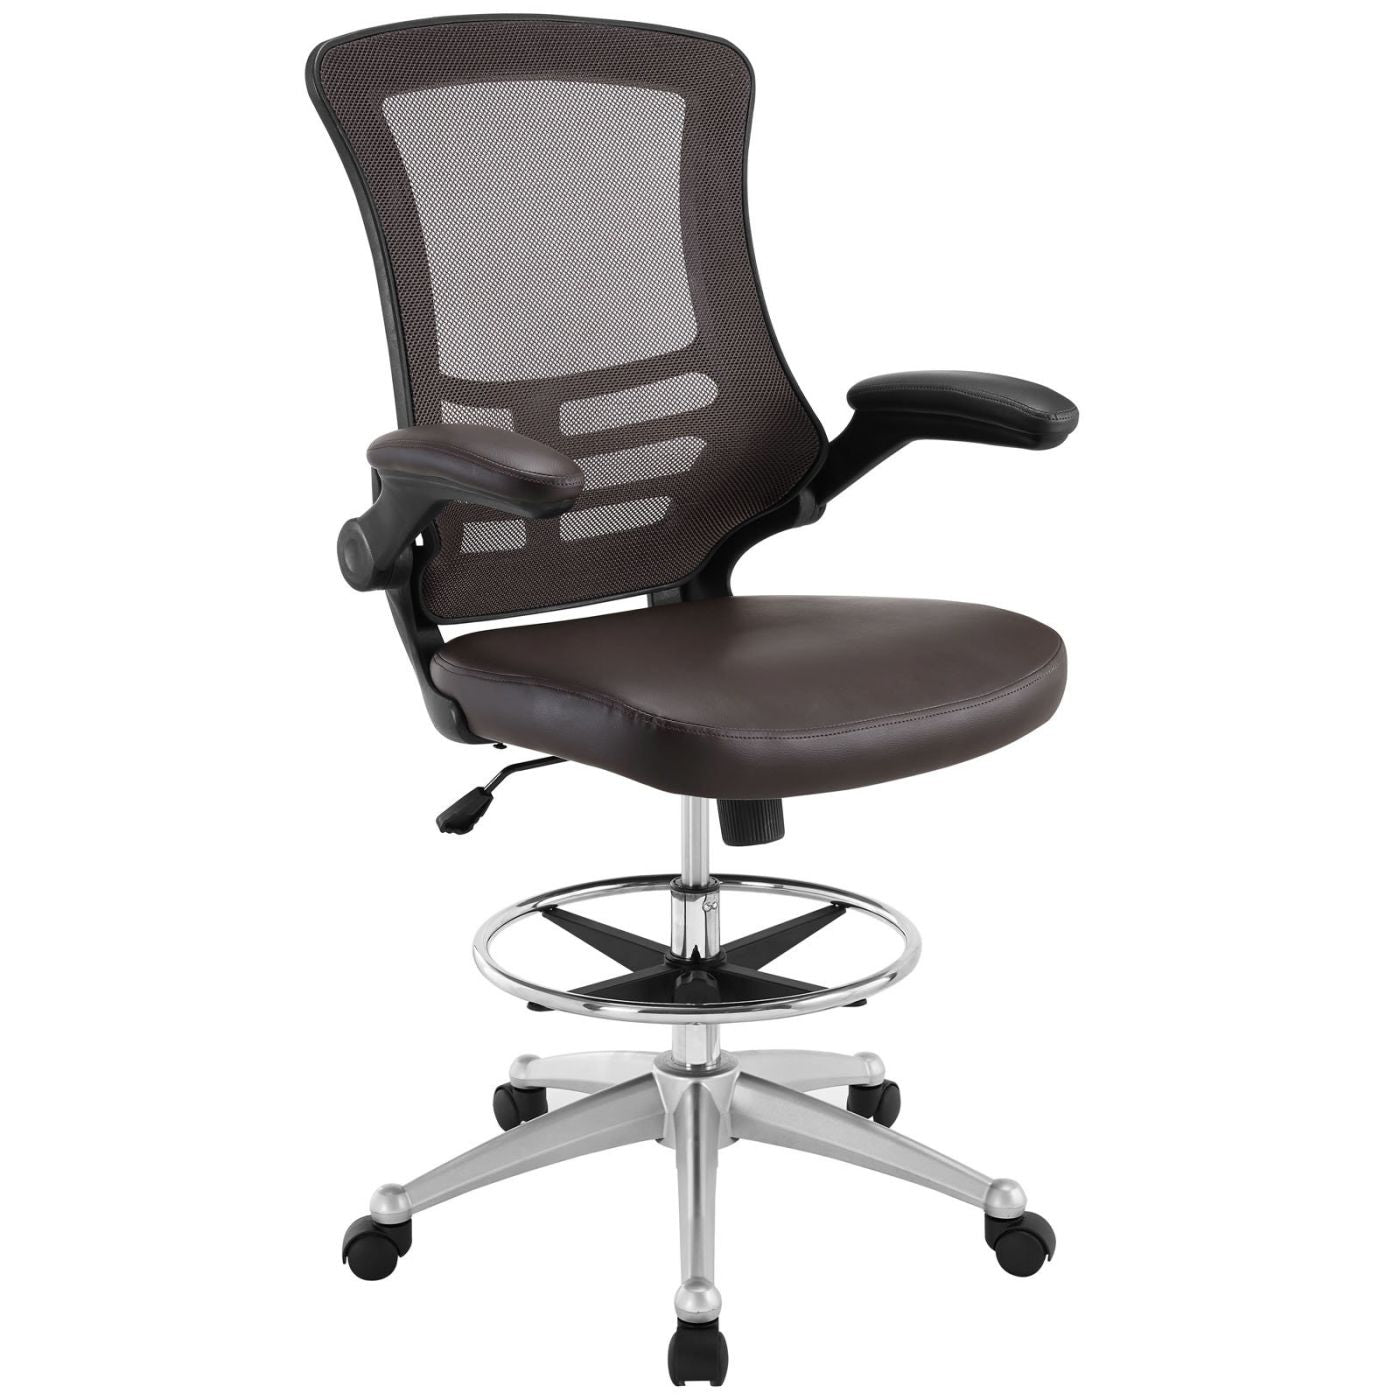 office drafting chair. Attainment Faux Leather Drafting Chair Brown Office